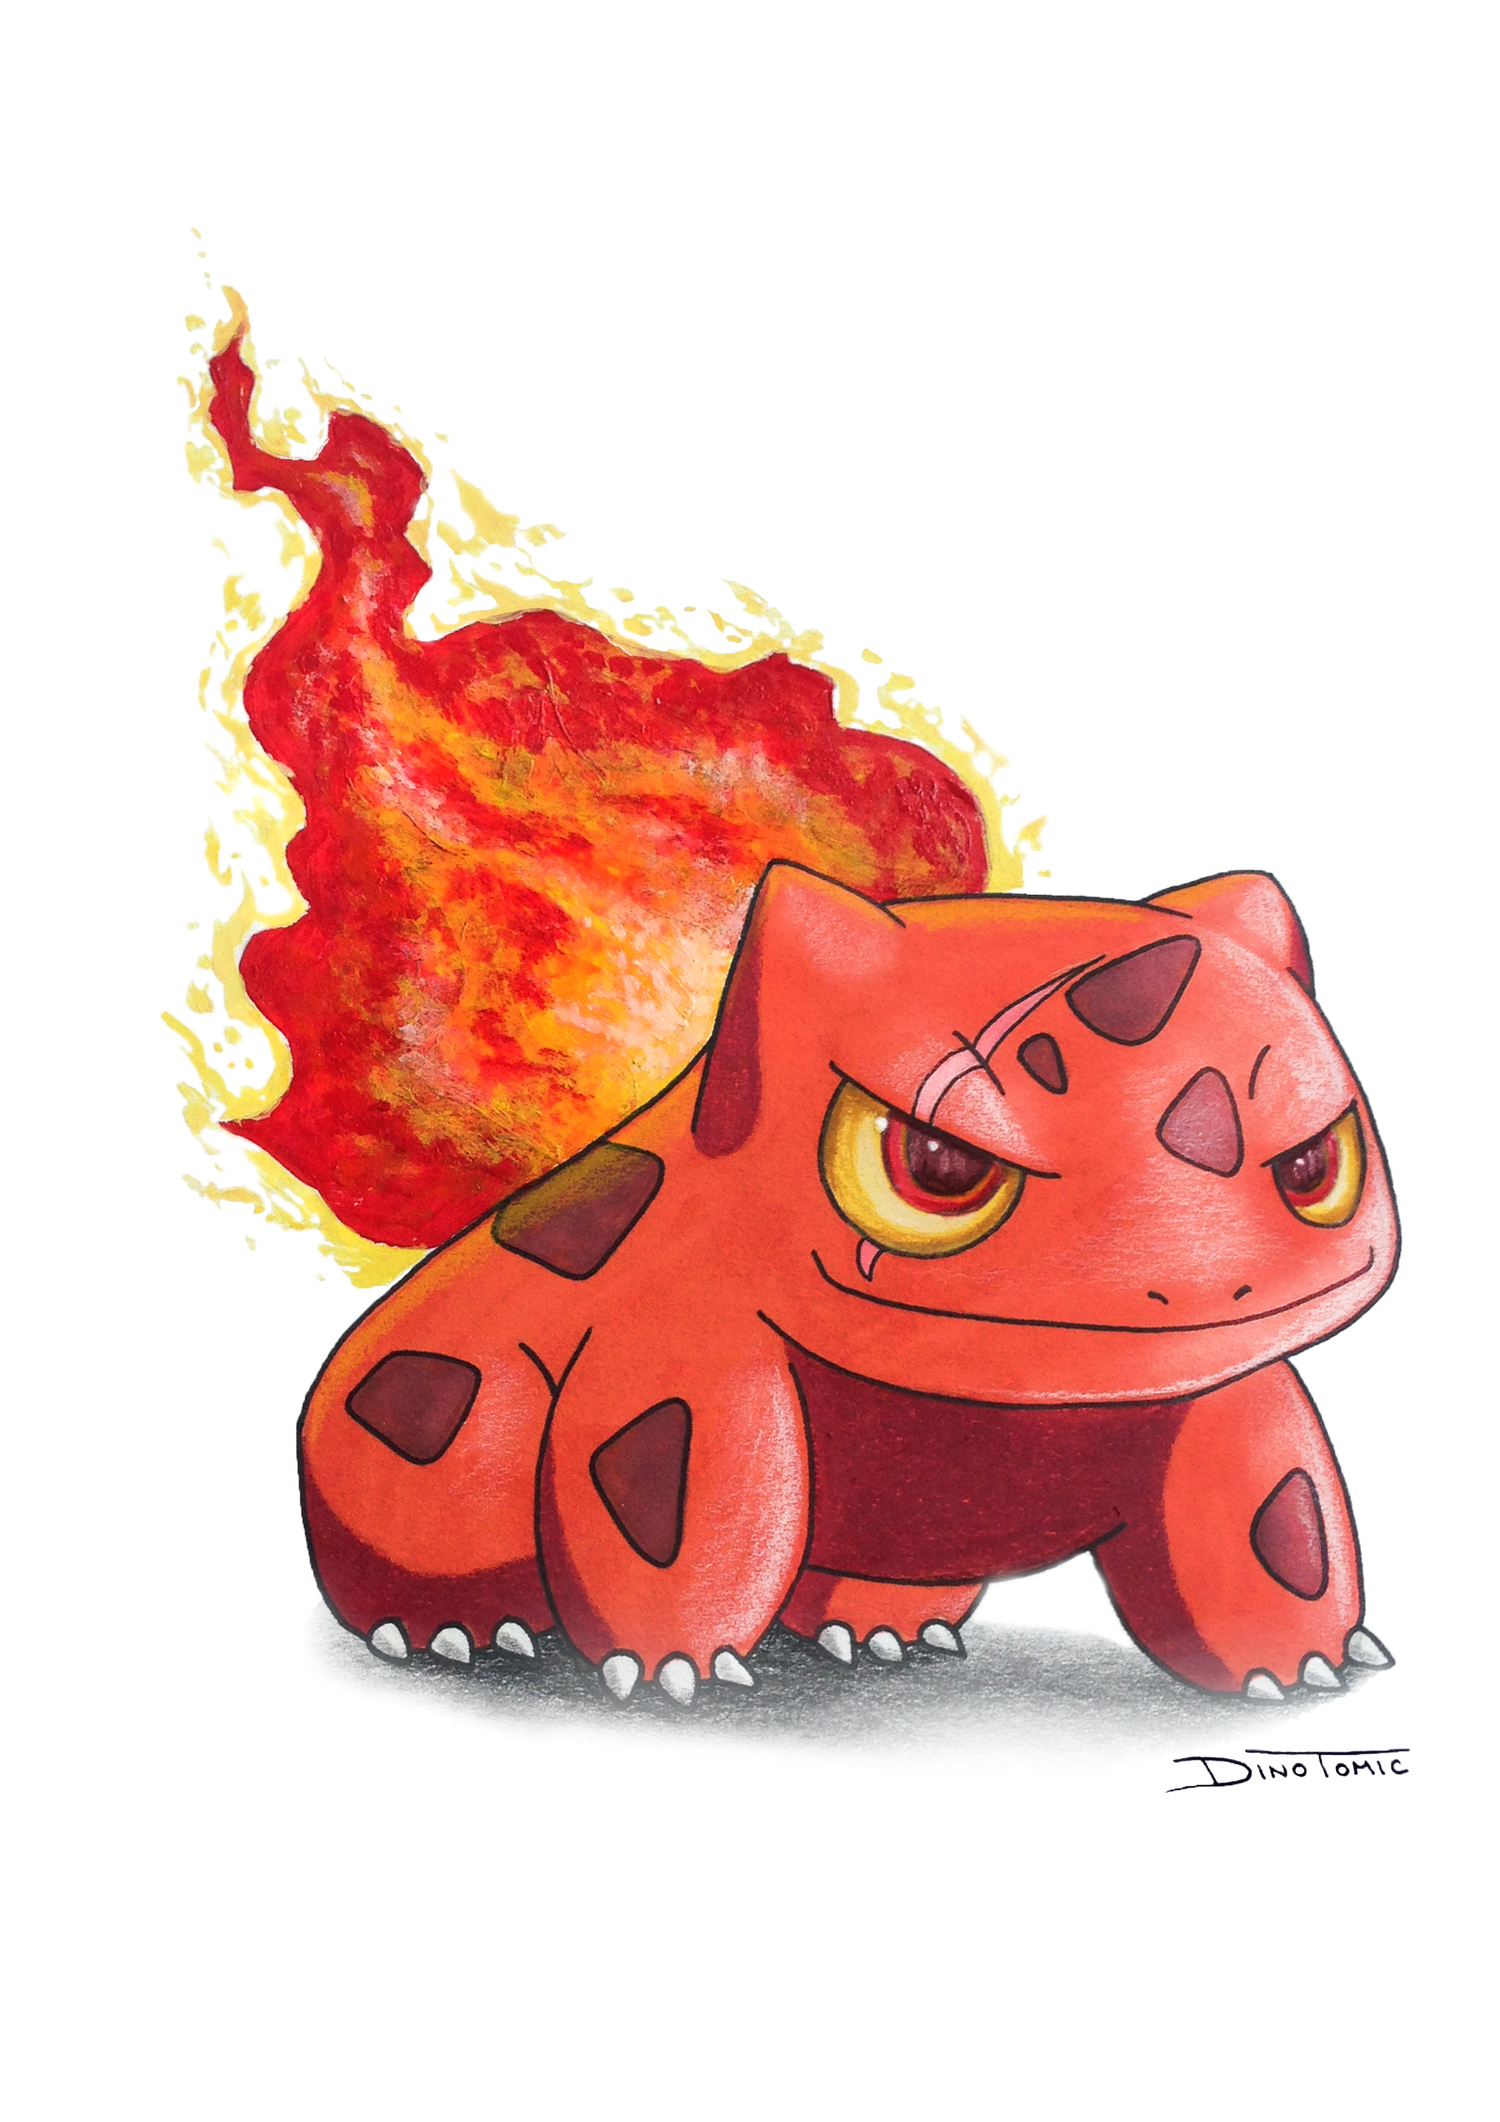 Image of #35 Fire Bulbasaur